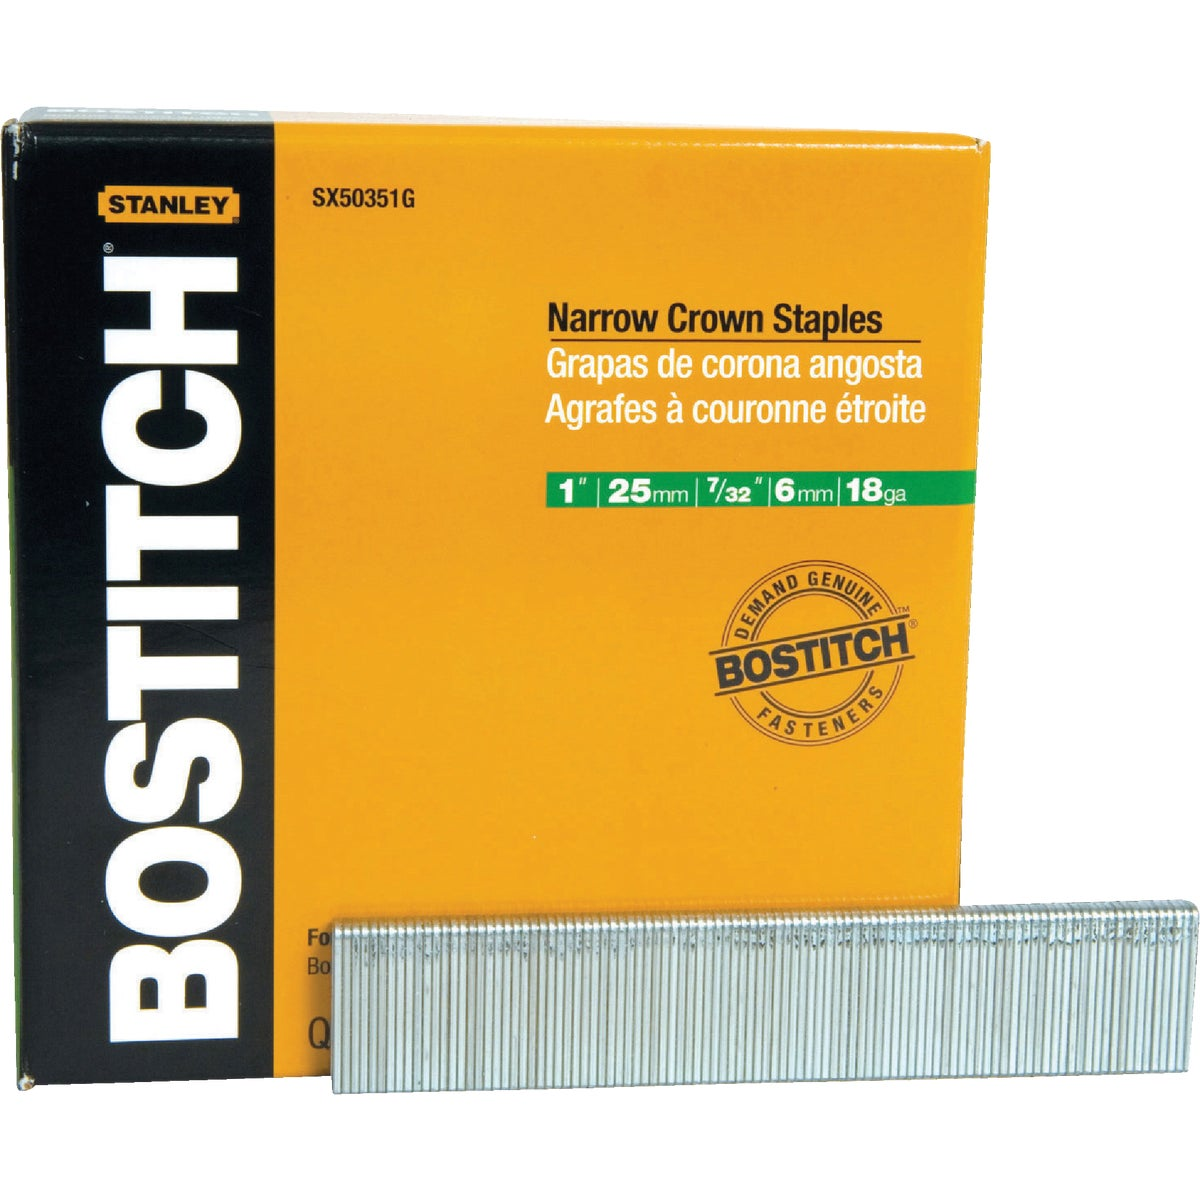 "1"" GALV FINISH STAPLE - SX50351G by Stanley Bostitch"